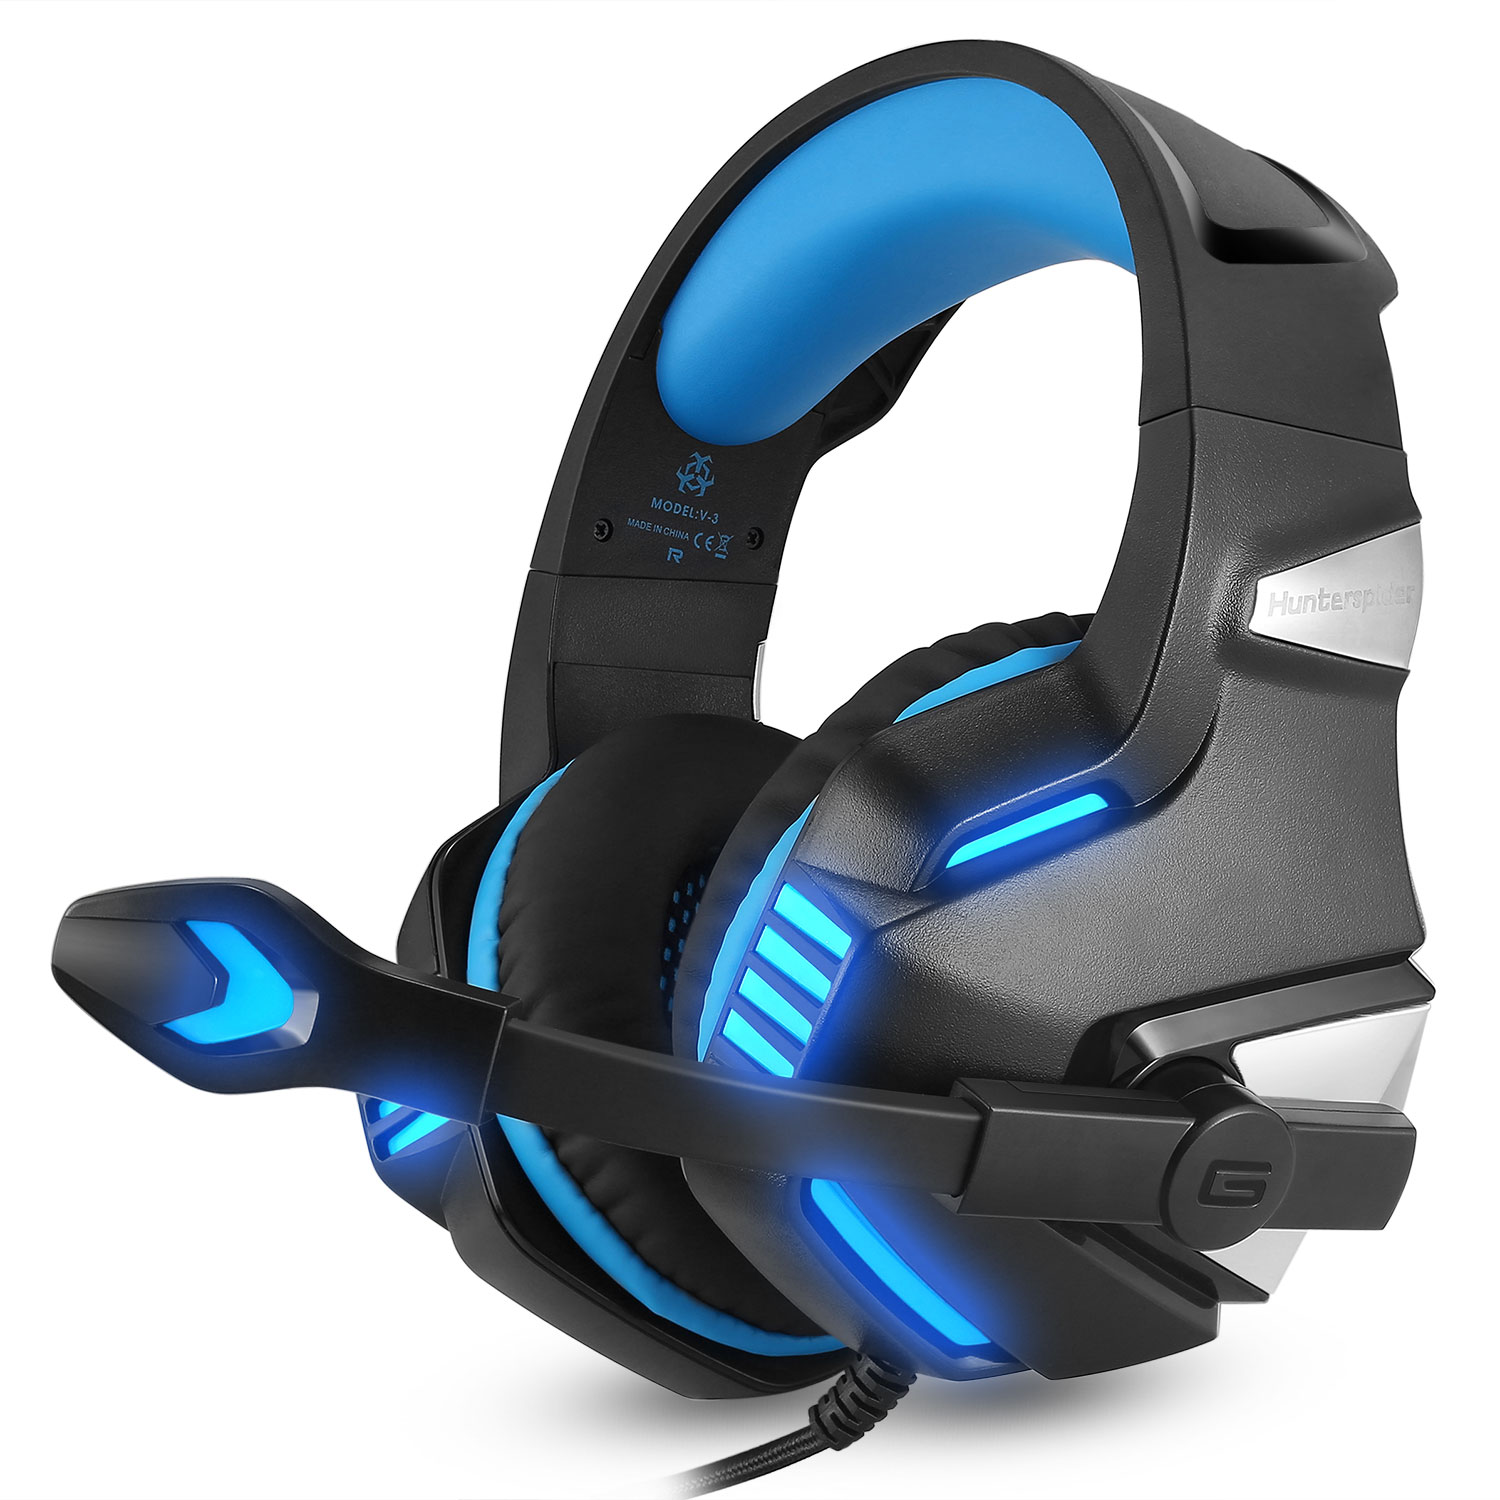 Hunterspider Gaming Headset for PS4 Xbox One, Over Ear Gaming Headphones with Mic, Stereo Bass Surround, LED Lights and Volume Control for Laptop, PC, Mac, iPad, Smartphones